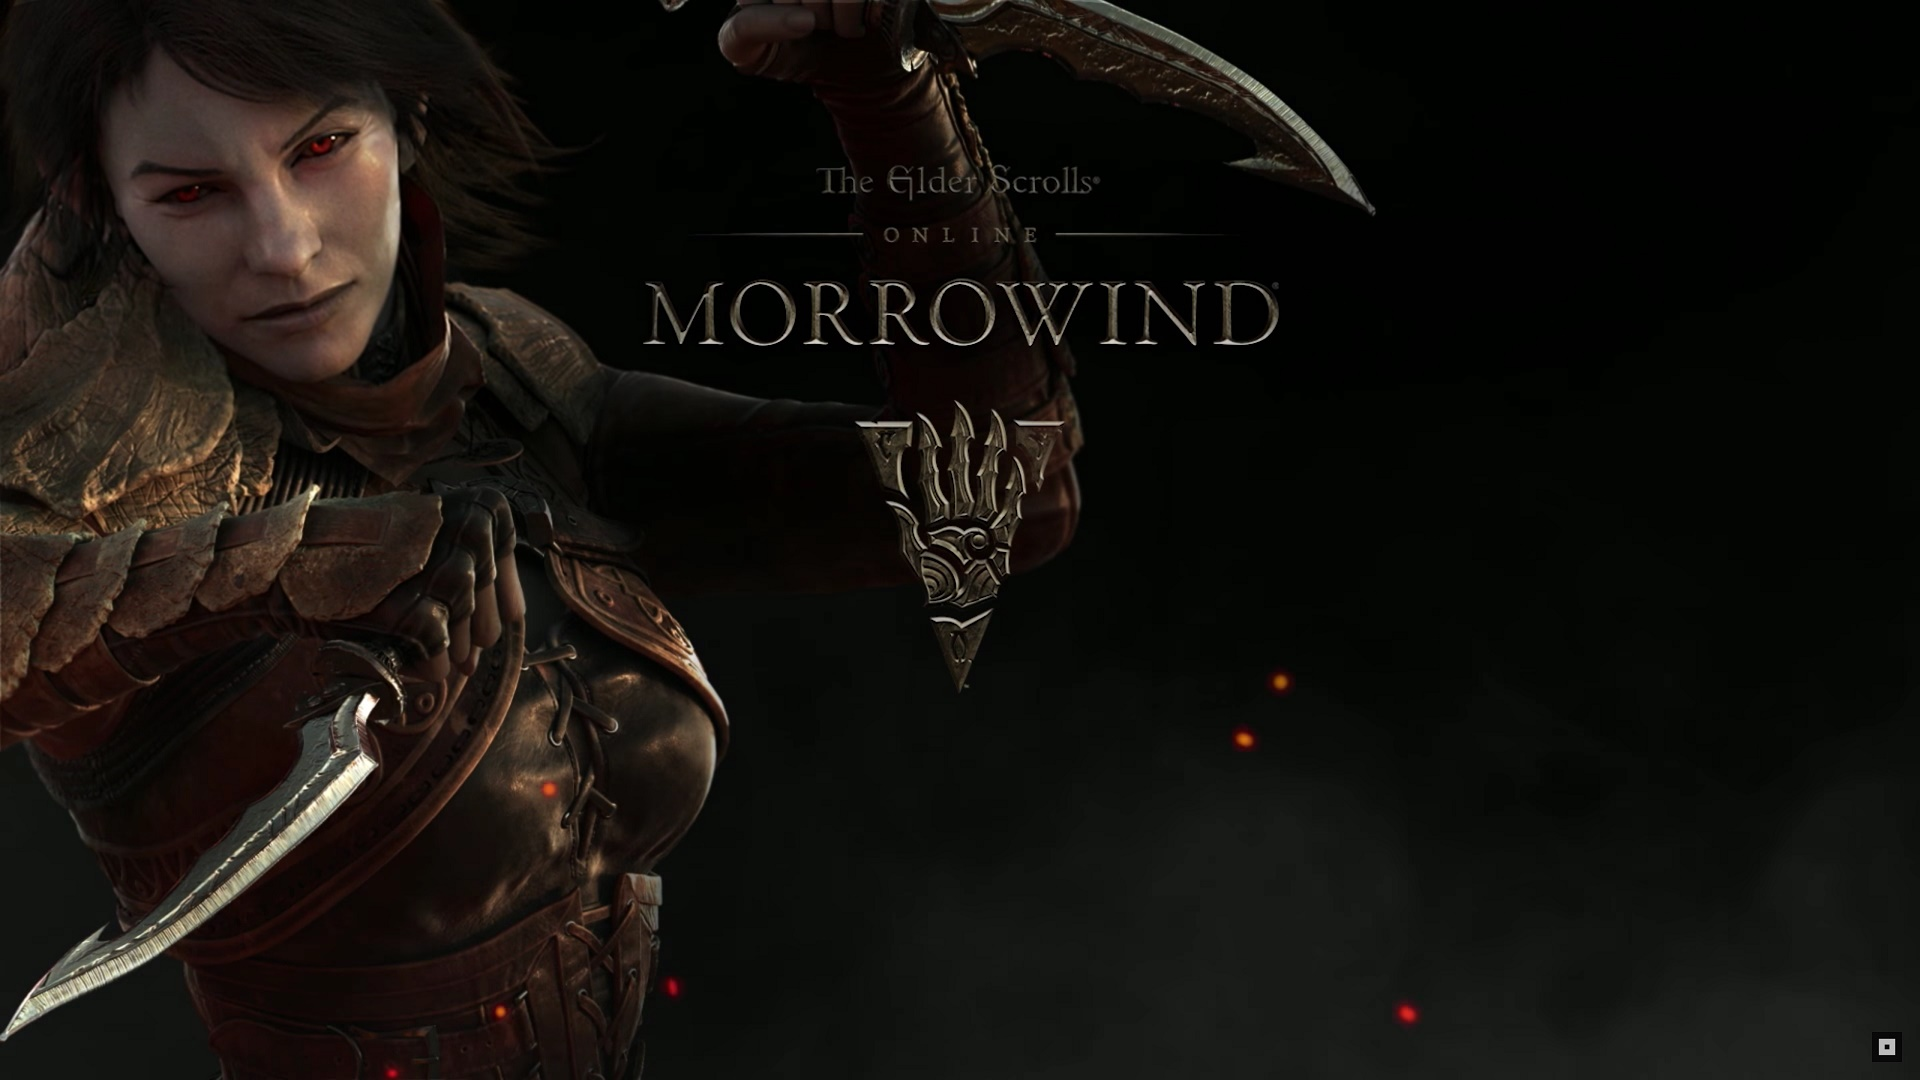 The-Elder-Scrolls-Online-Morrowind 3